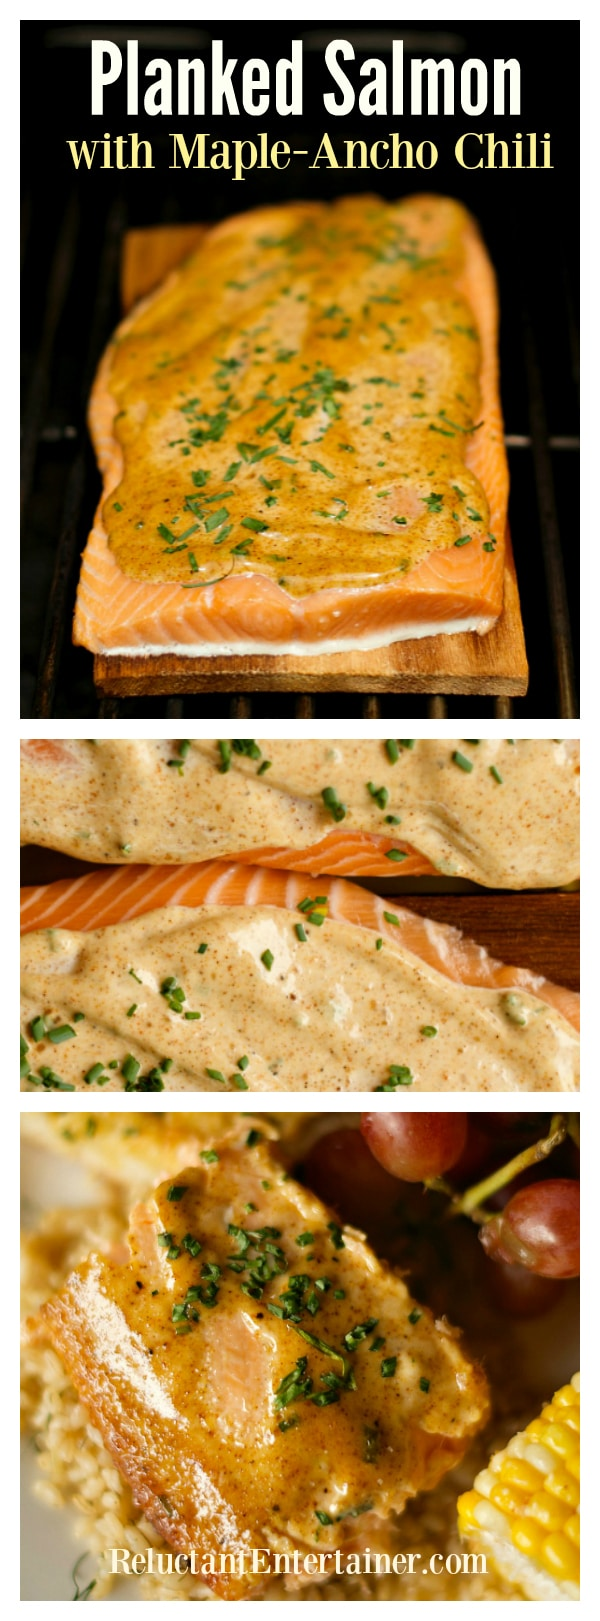 Planked Salmon with Maple-Ancho Chili Recipe